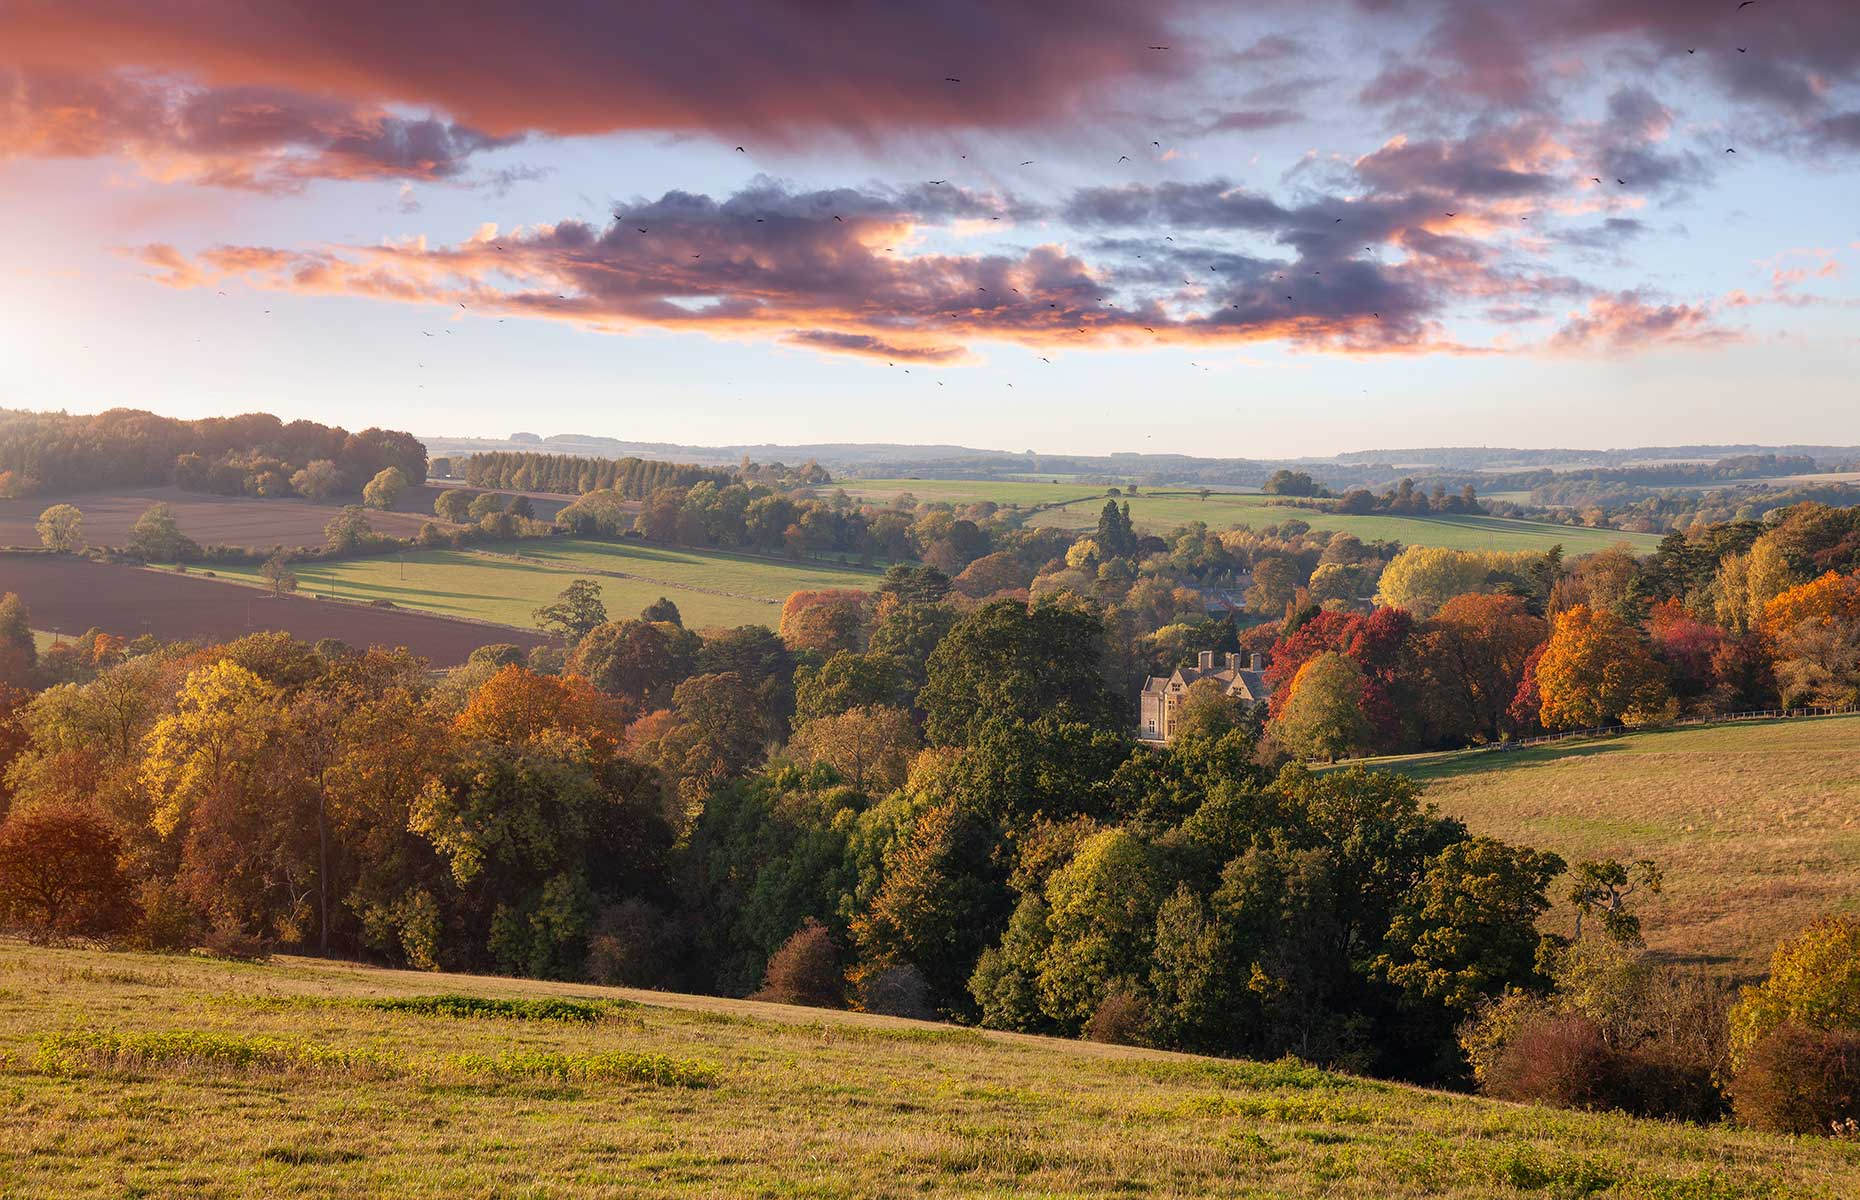 View from Stow on the Wold (Image: Andrew Roland/Shutterstock)